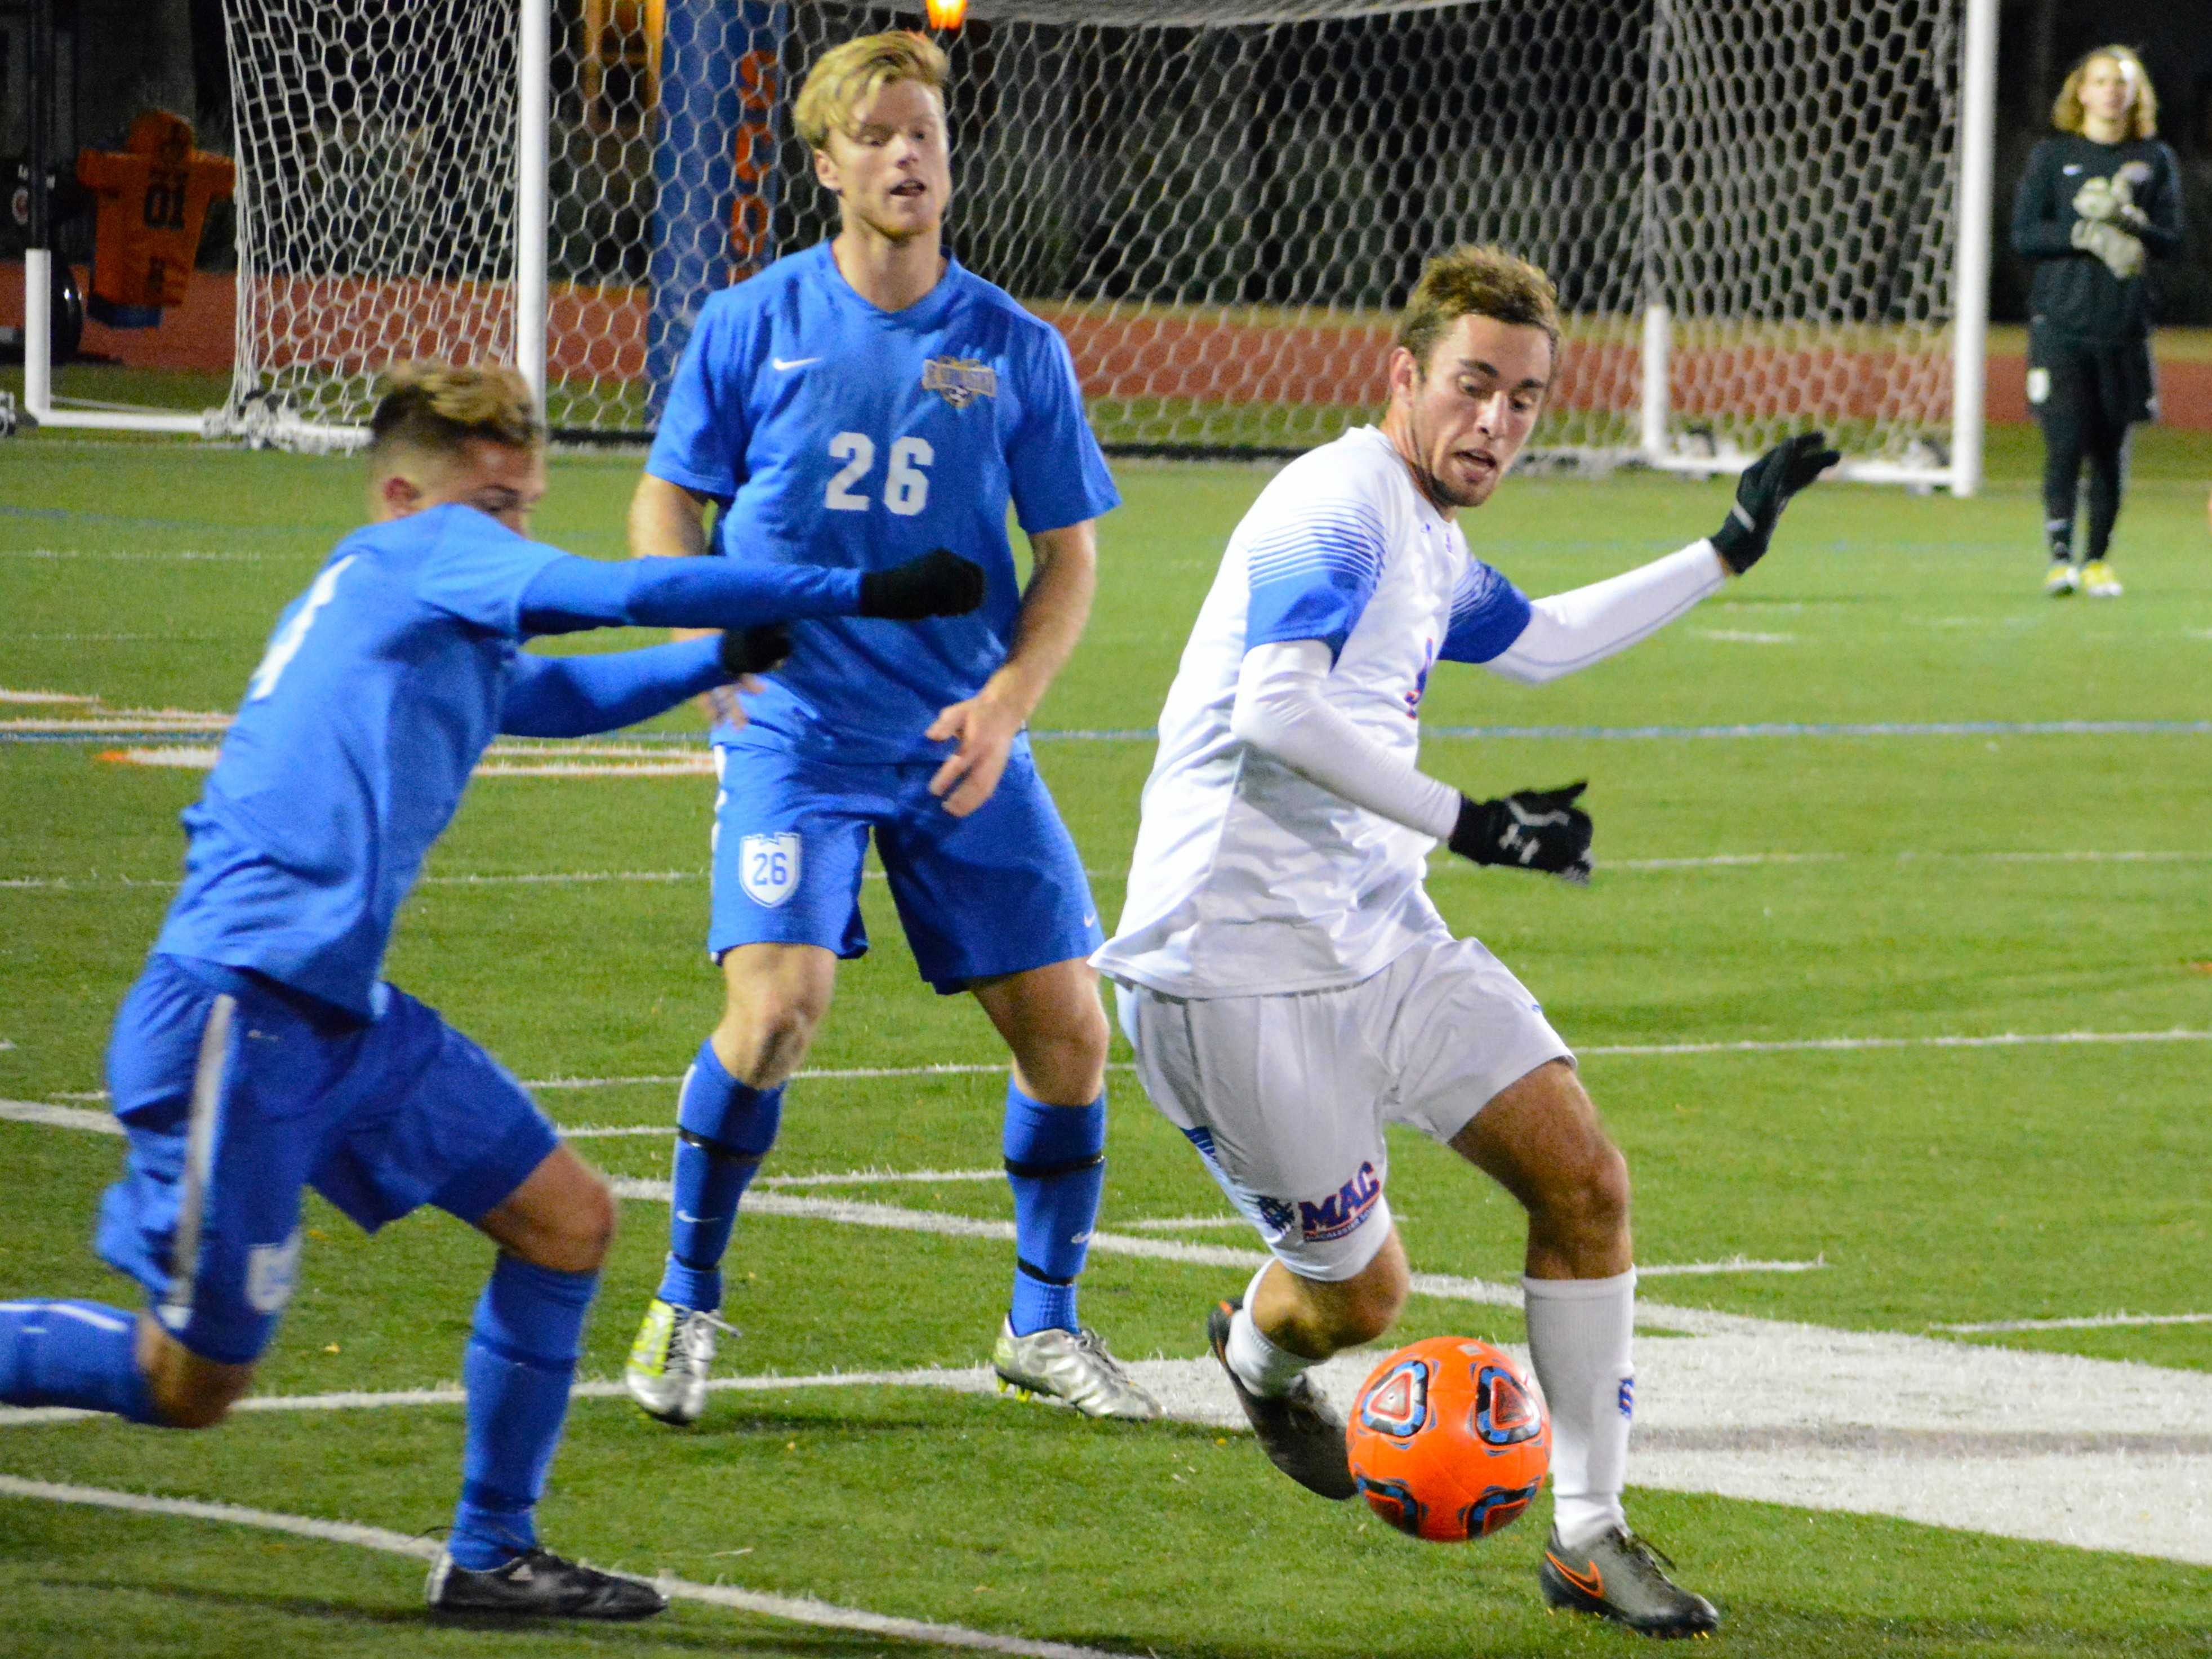 Austin Burrows '17 at Macalester Stadium in the first round of NCAA Tournament. Burrows scored in the 89th minute to send the Scots past St. Scholastica and into the second round. *Photo by Anders Voss '16. *